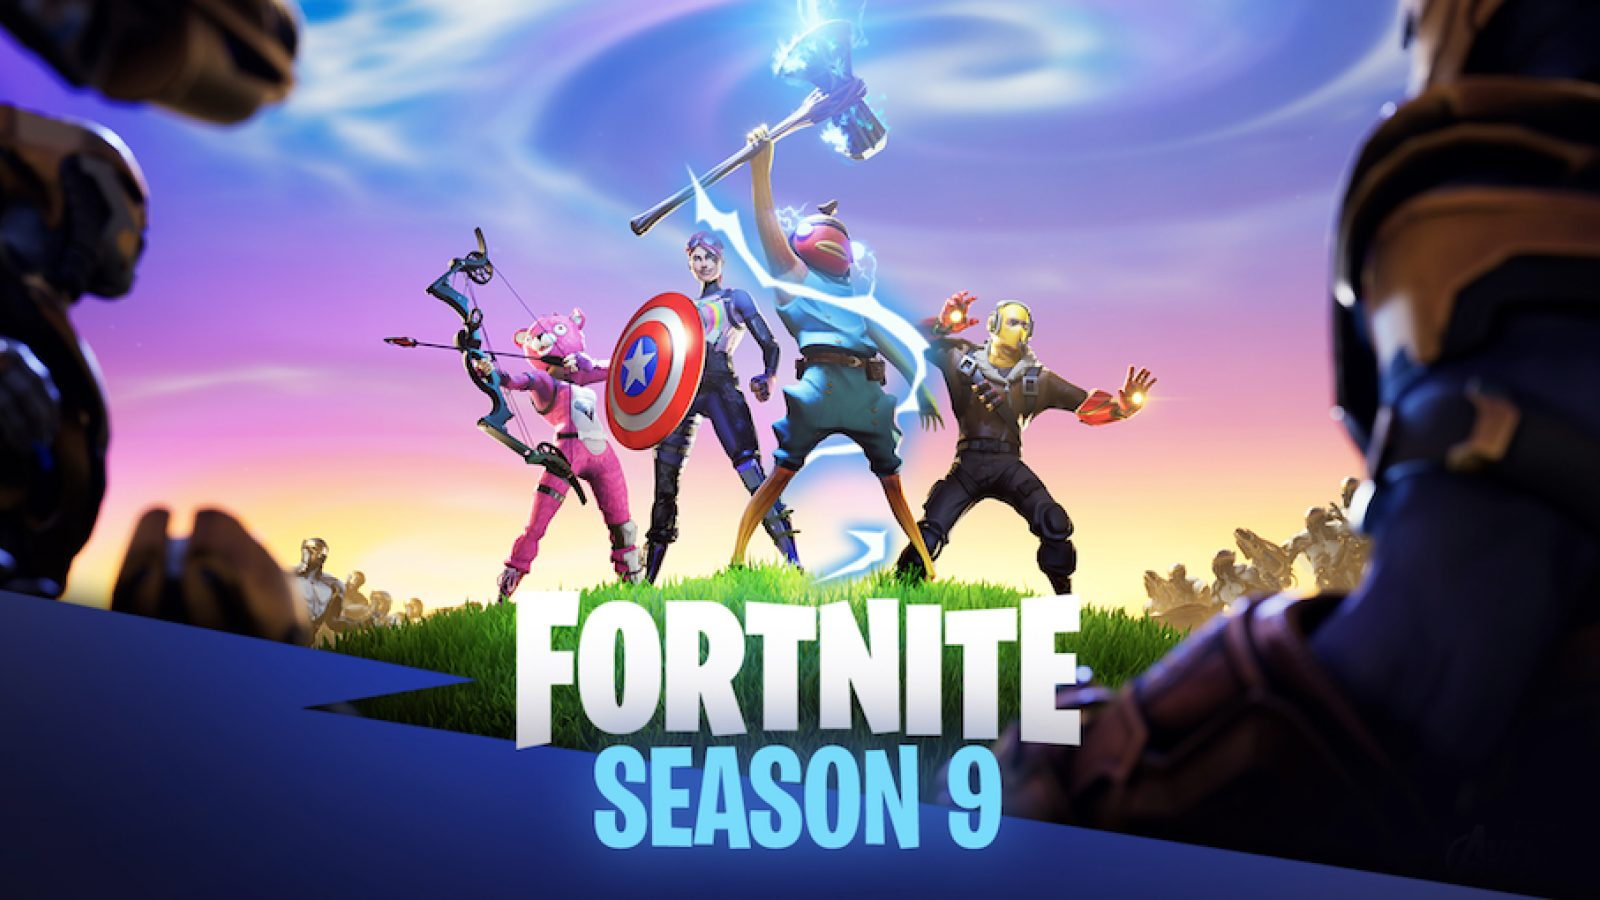 Download Fortnite Apk v9 00 0 with Season 9 Battle Pass for Android